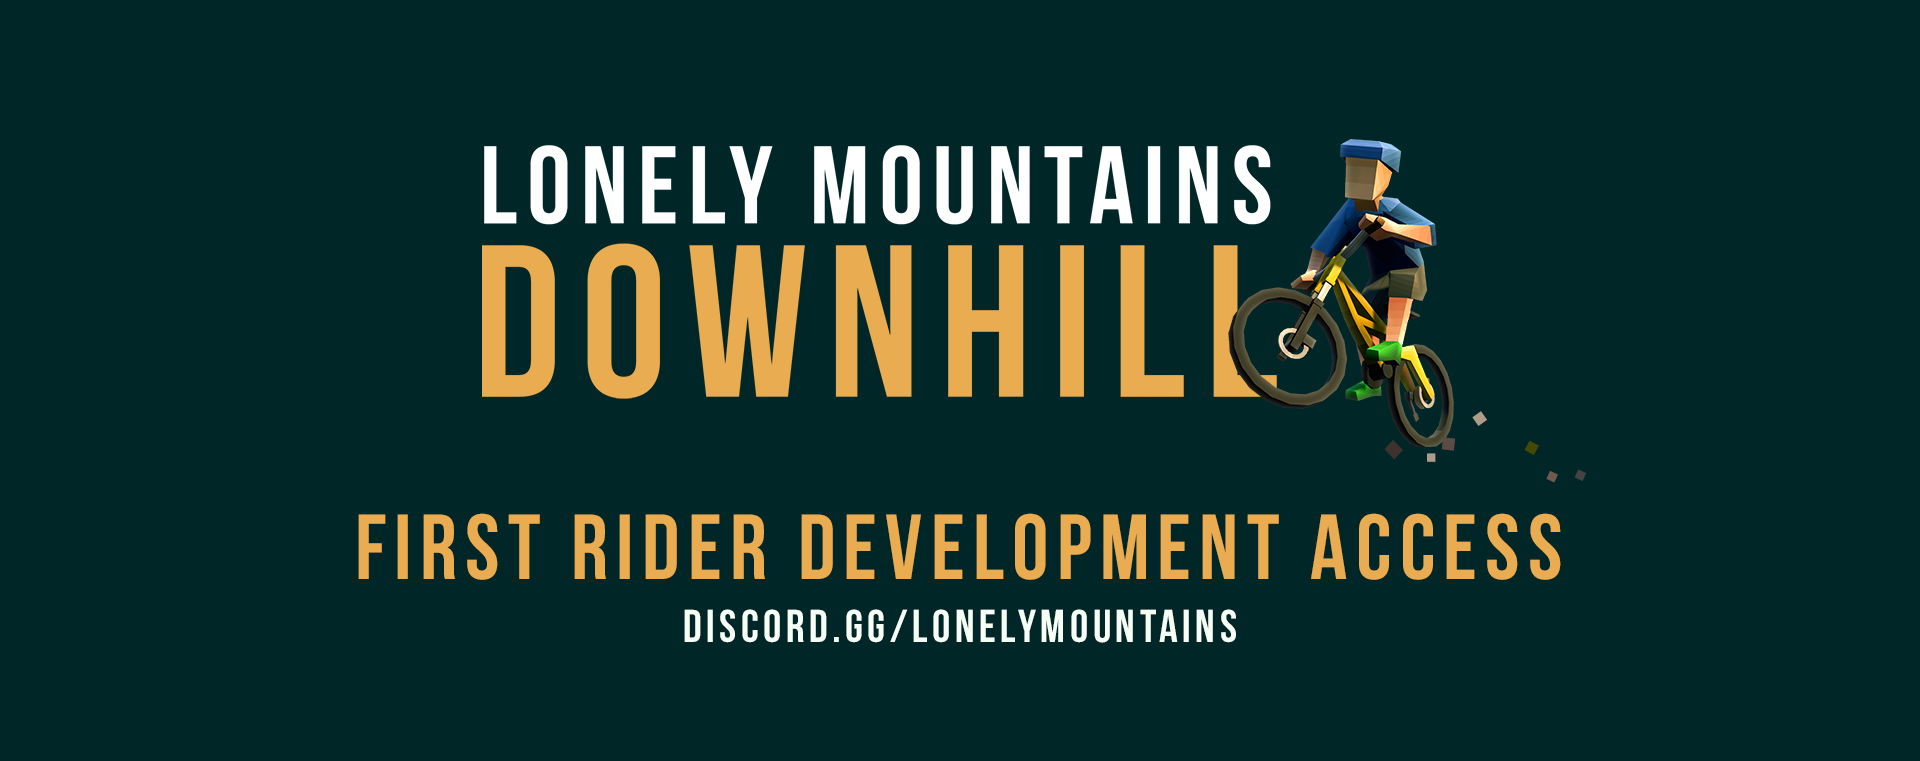 Lonely Mountains: Downhill - Development Access